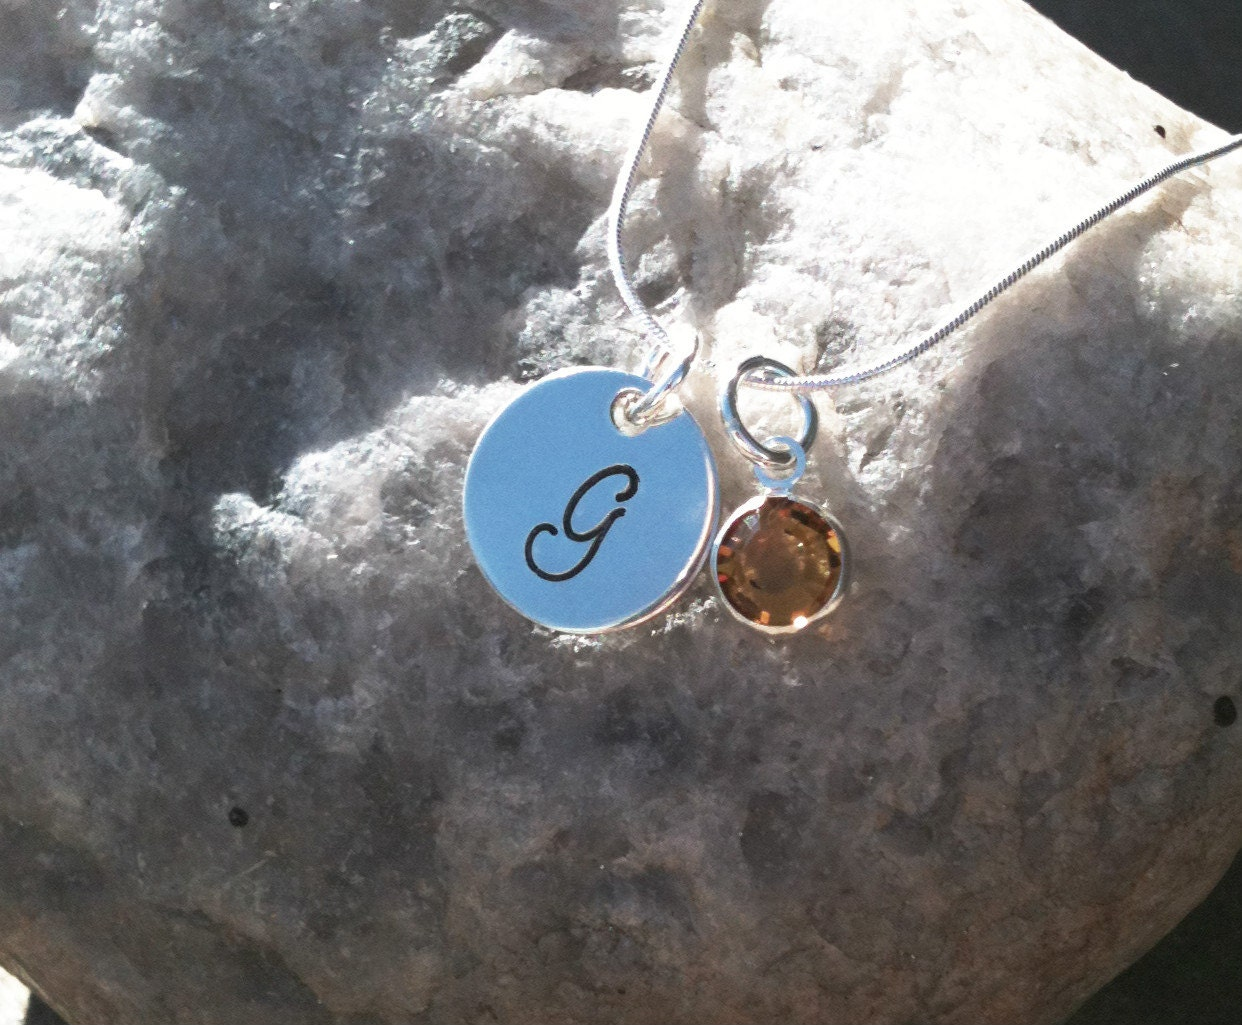 "Princess Necklace - Hand Stamped Sterling Silver Initial Necklace with Swarovski Birthstone Charm 14"" or 16"" - HARLEYStripes"